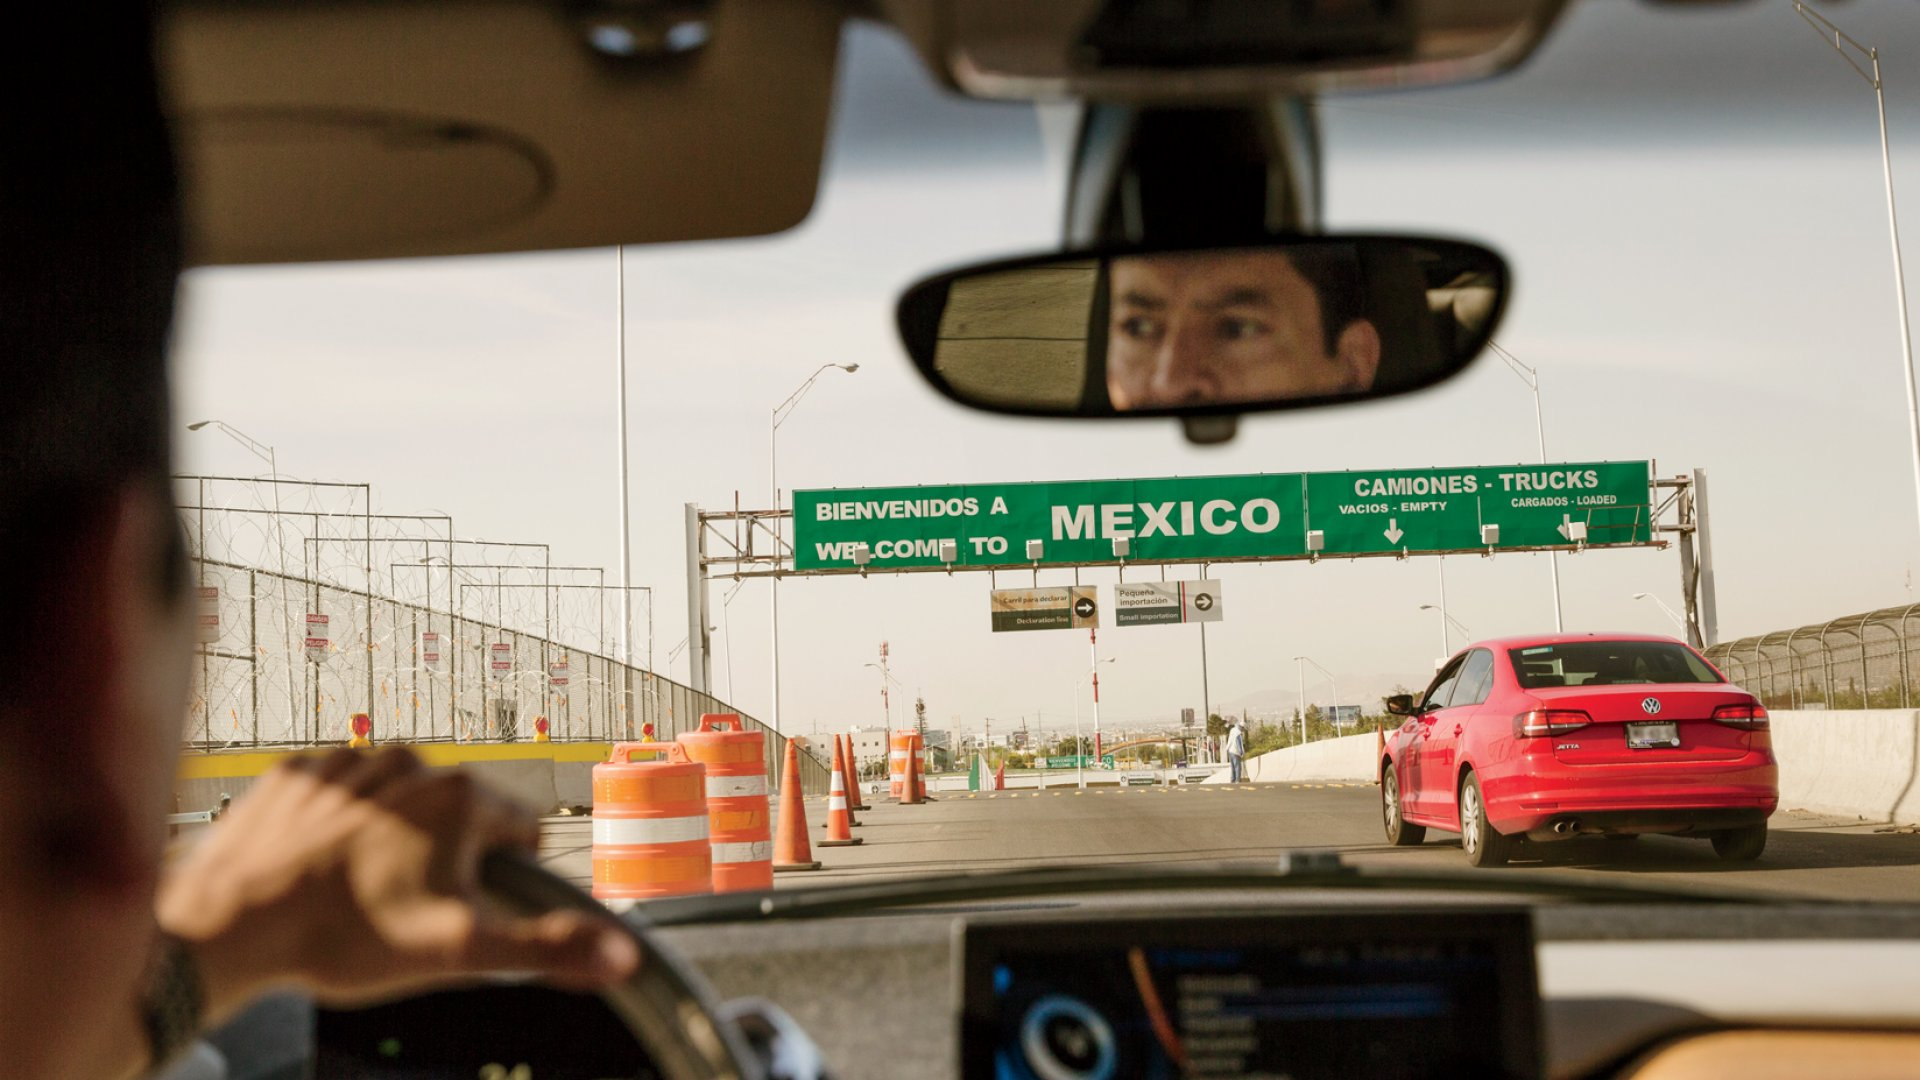 Ricardo Mora behind the wheel and entering Mexico, as he does everyday.